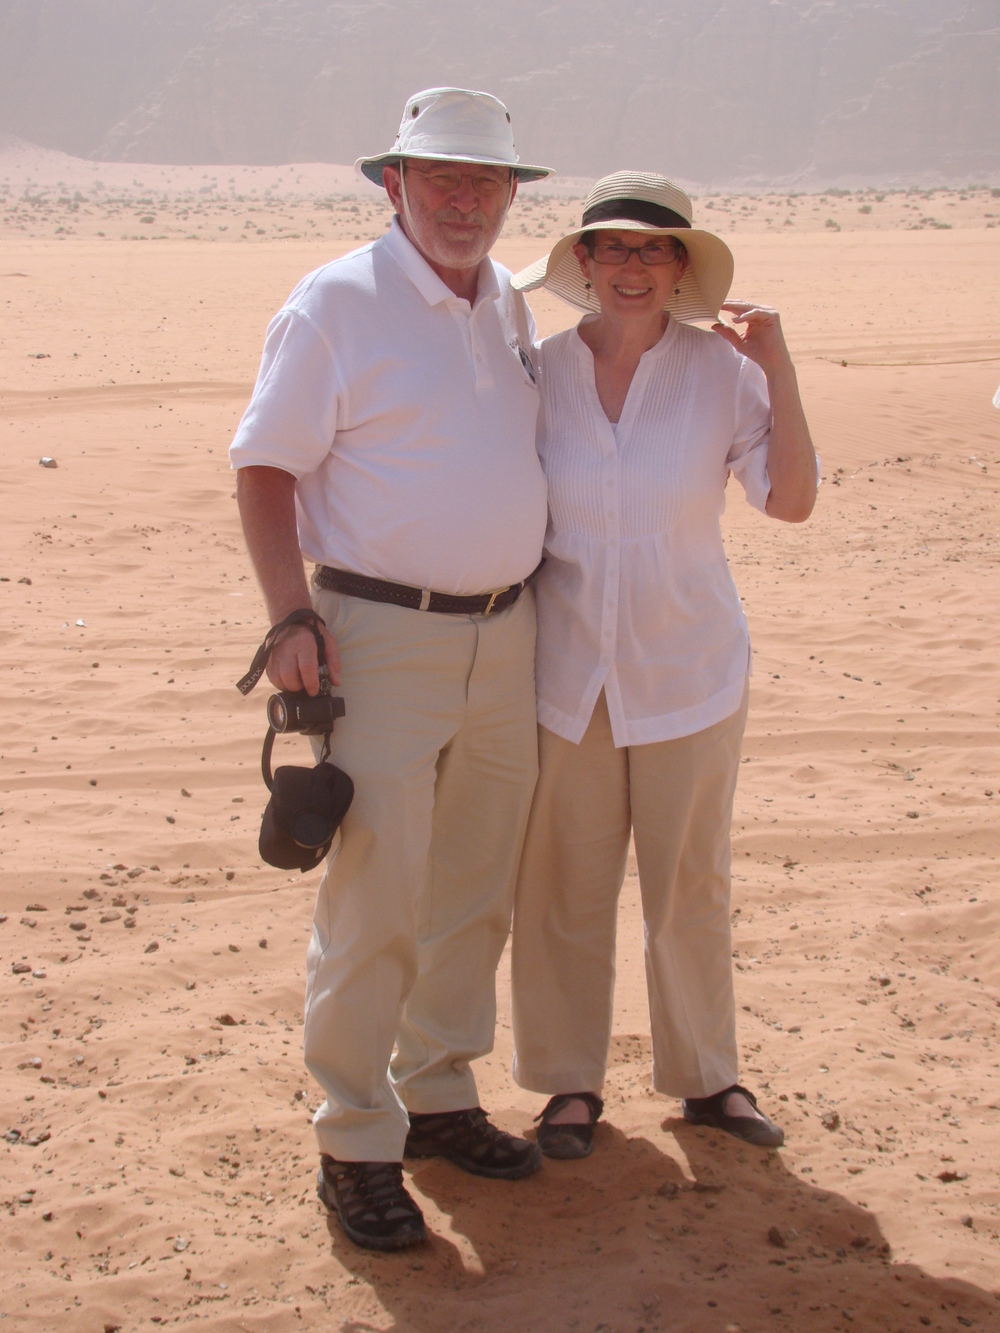 Senior arawjotours tour leader / representative joe mccarthy with his wife Margie in wadi rum, jordan.